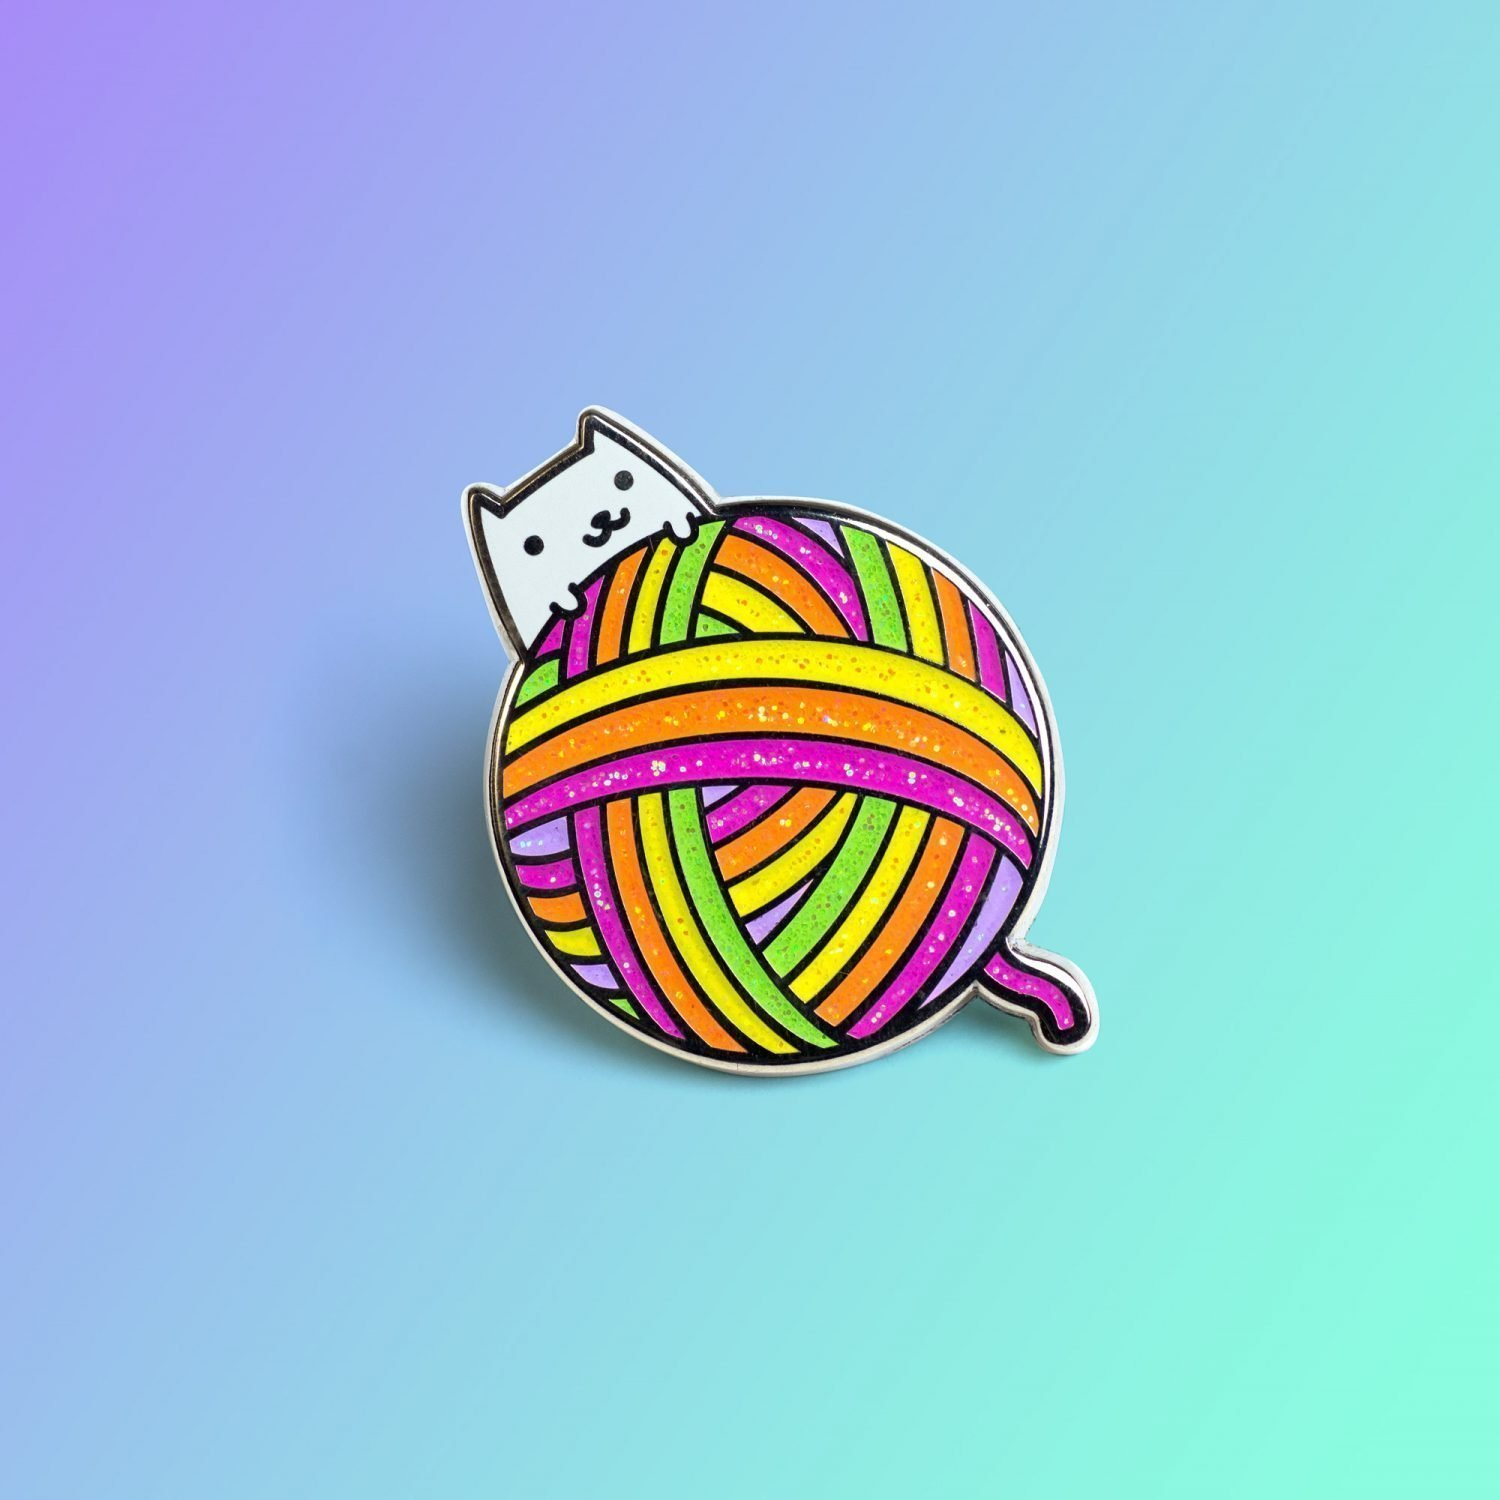 Yarnball Cat Pin by Robot Dance Party